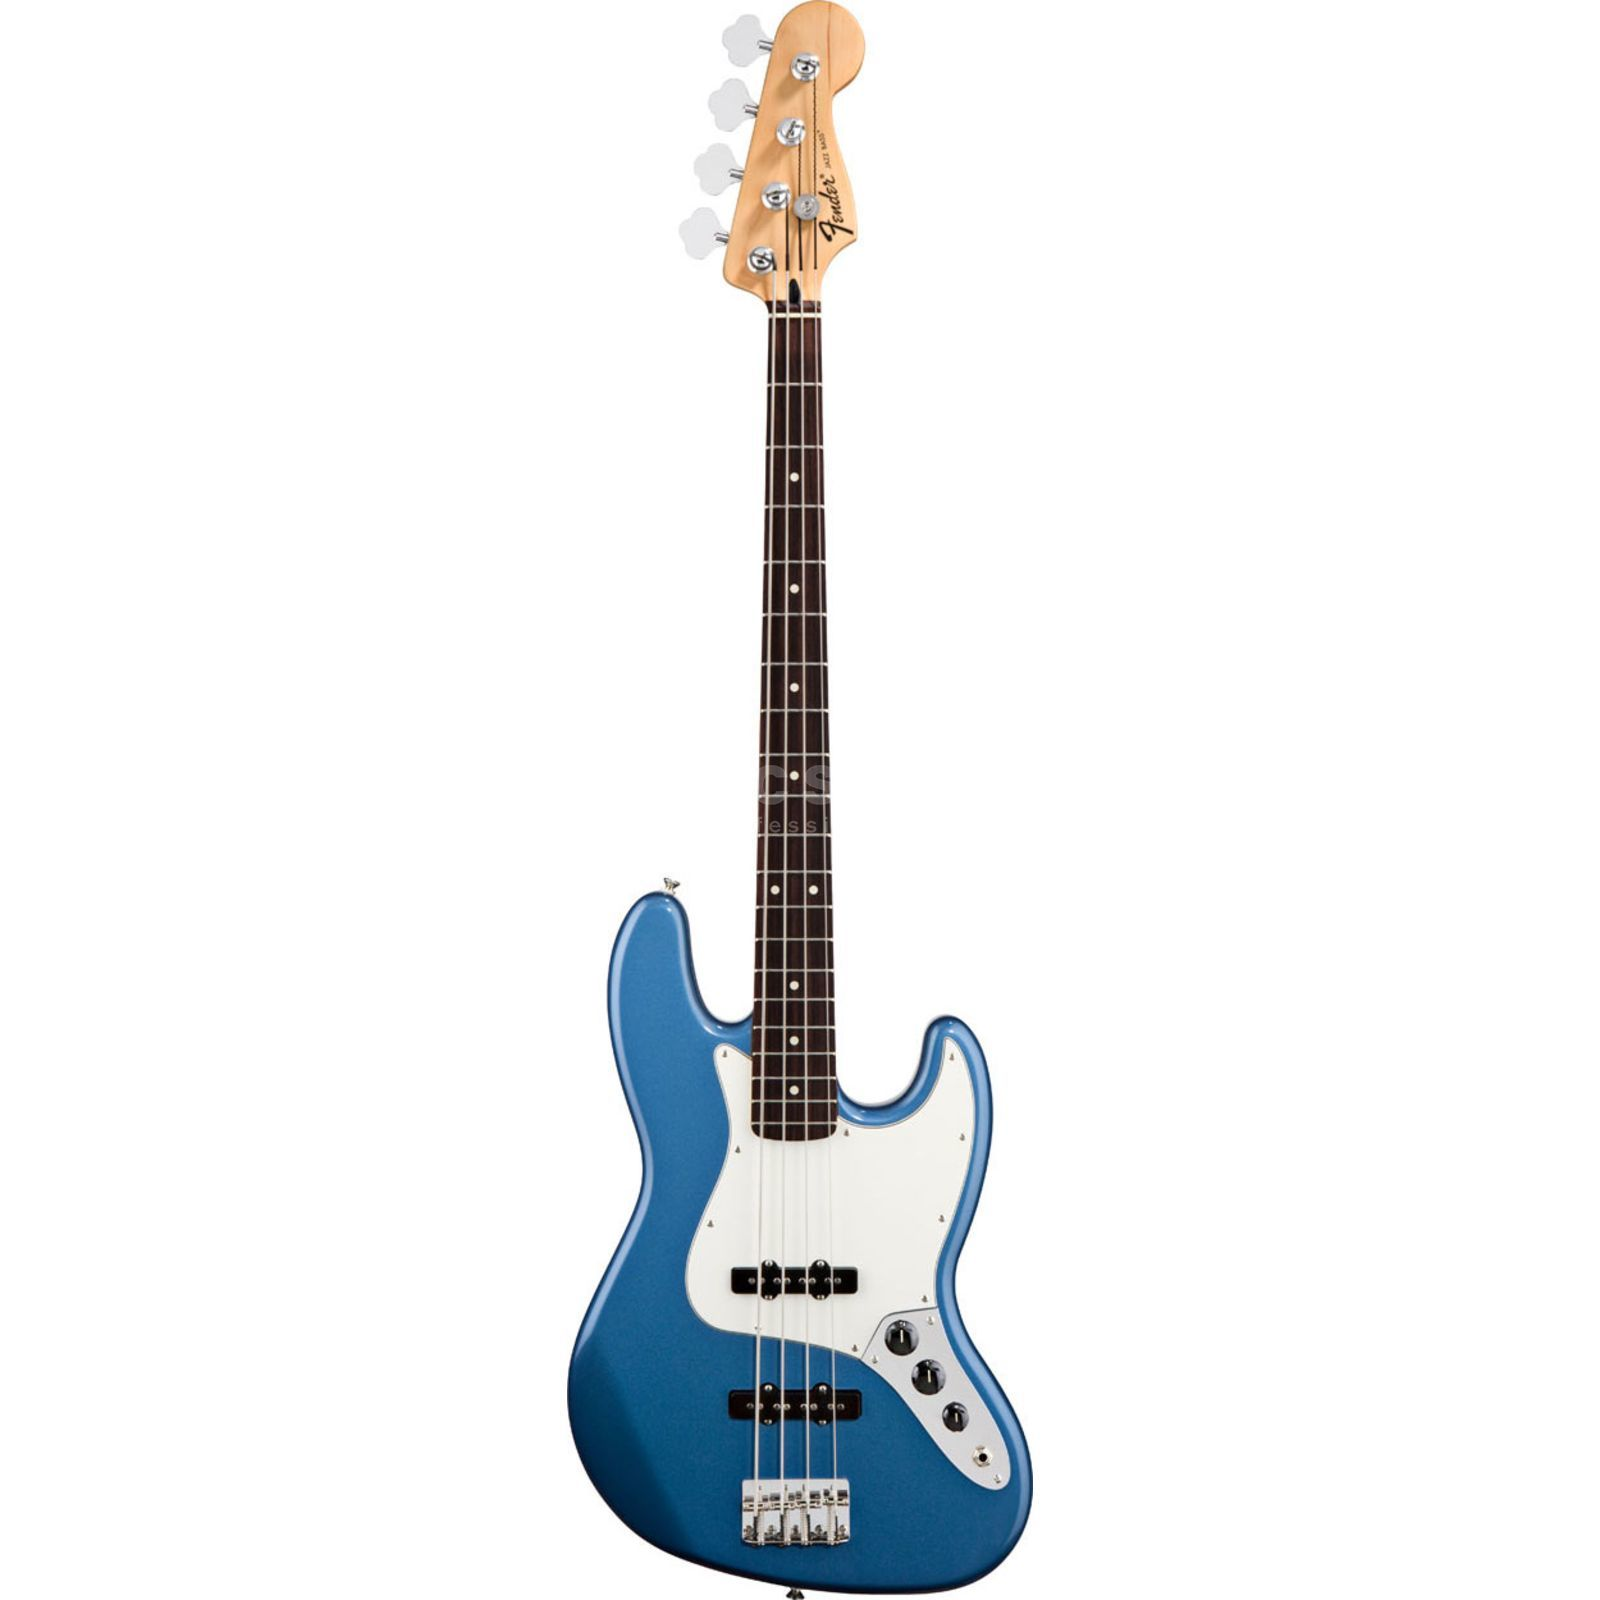 Fender Standard Jazz Bass RW Lake Placid Blue Изображение товара